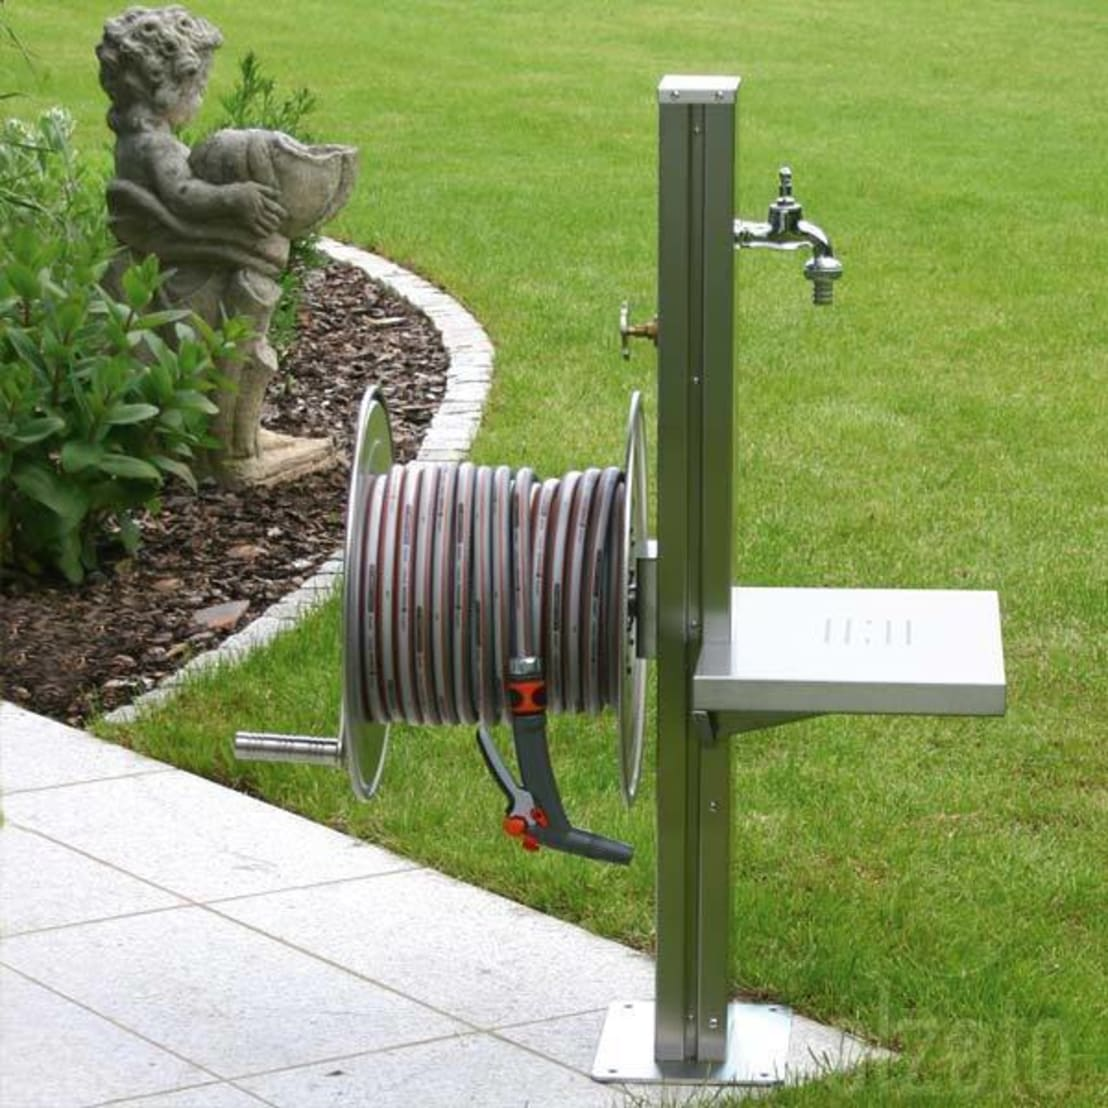 Stainless Steel Garden Tap Station With Hose Reel, Tap And